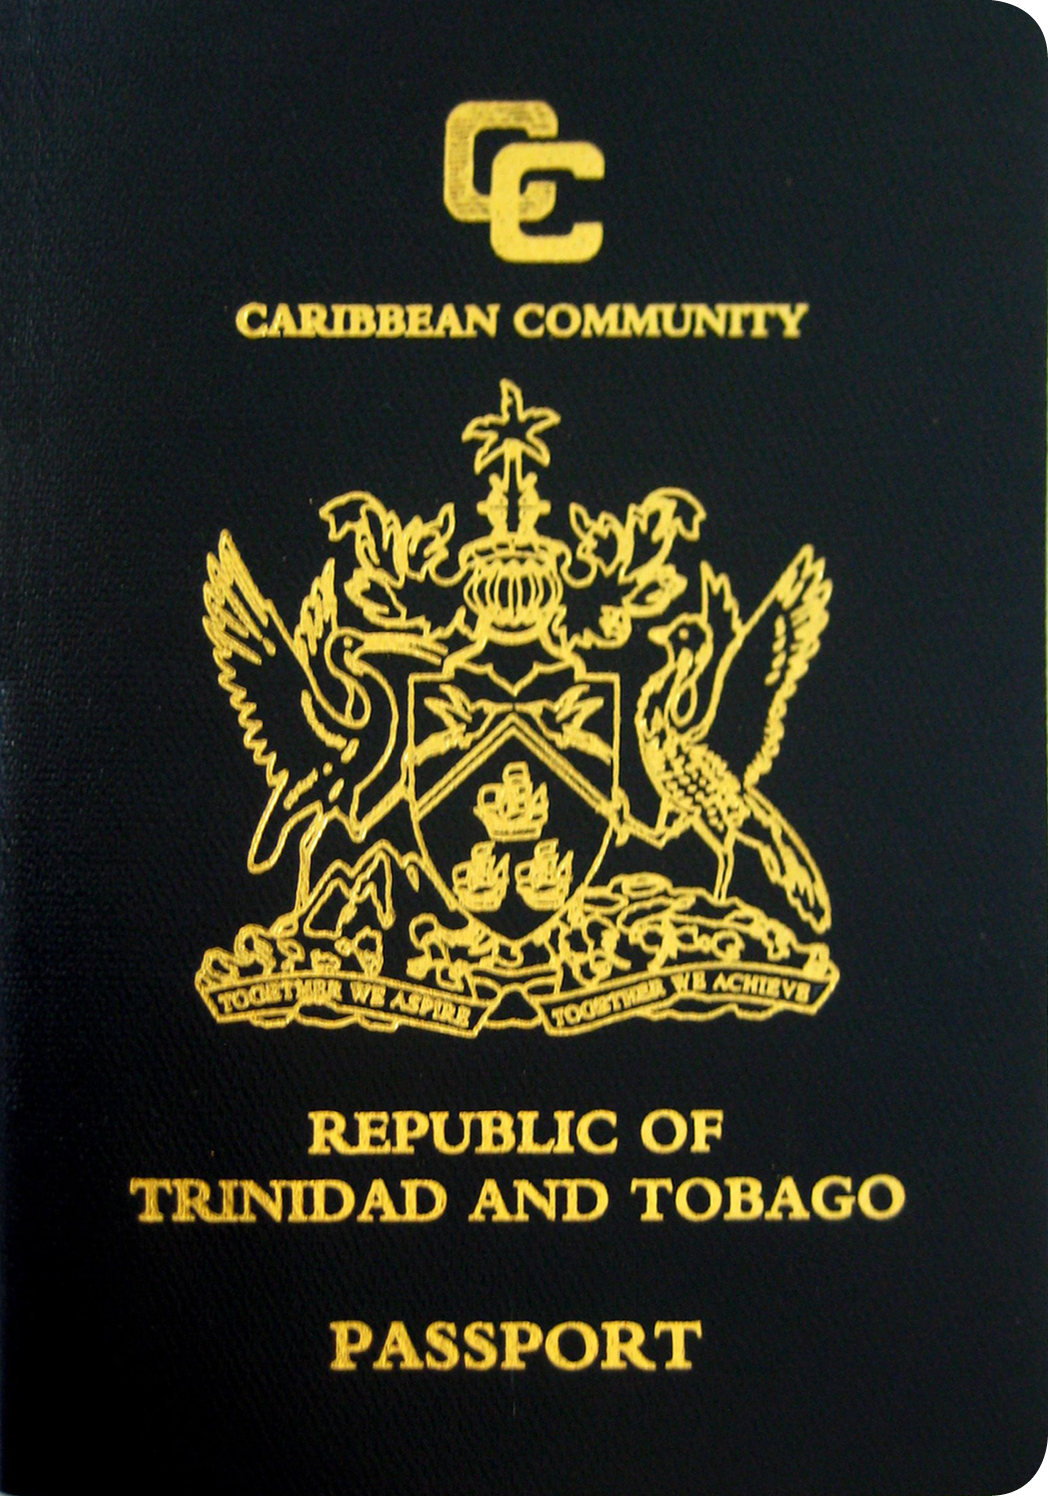 A regular or ordinary trinidad and tobago passport - Front side